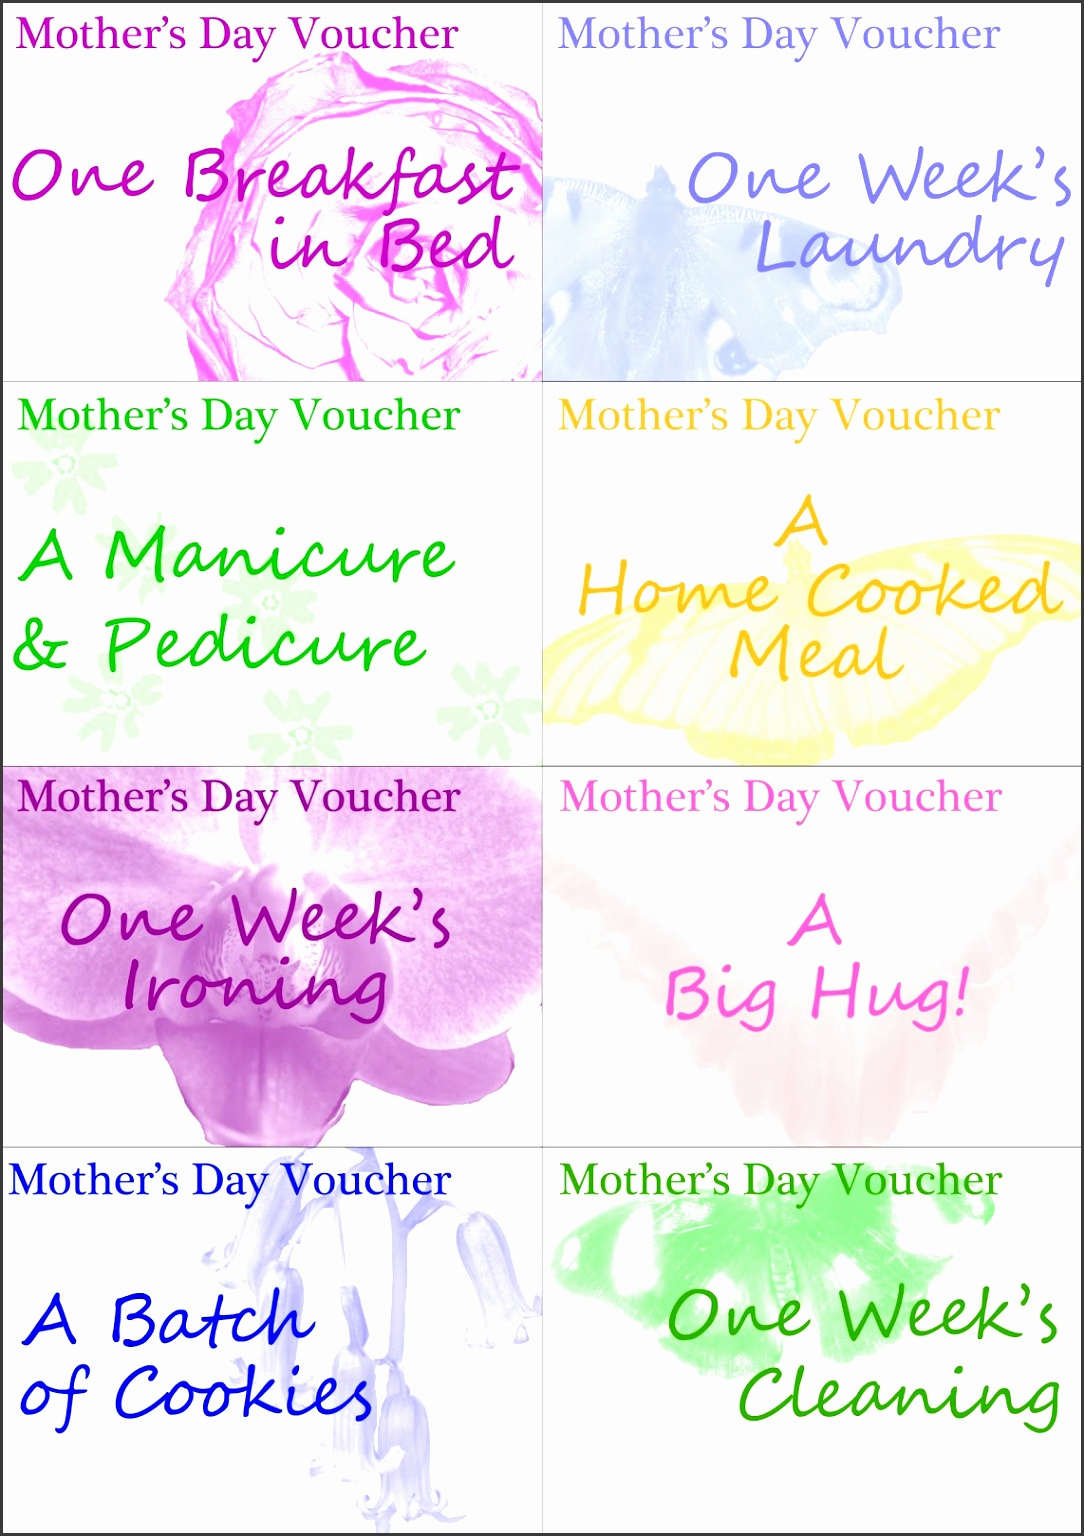 5 Printable Blank Gift Certificates  Sampletemplatess within Printable Mothers Day Gift Certificate Templates